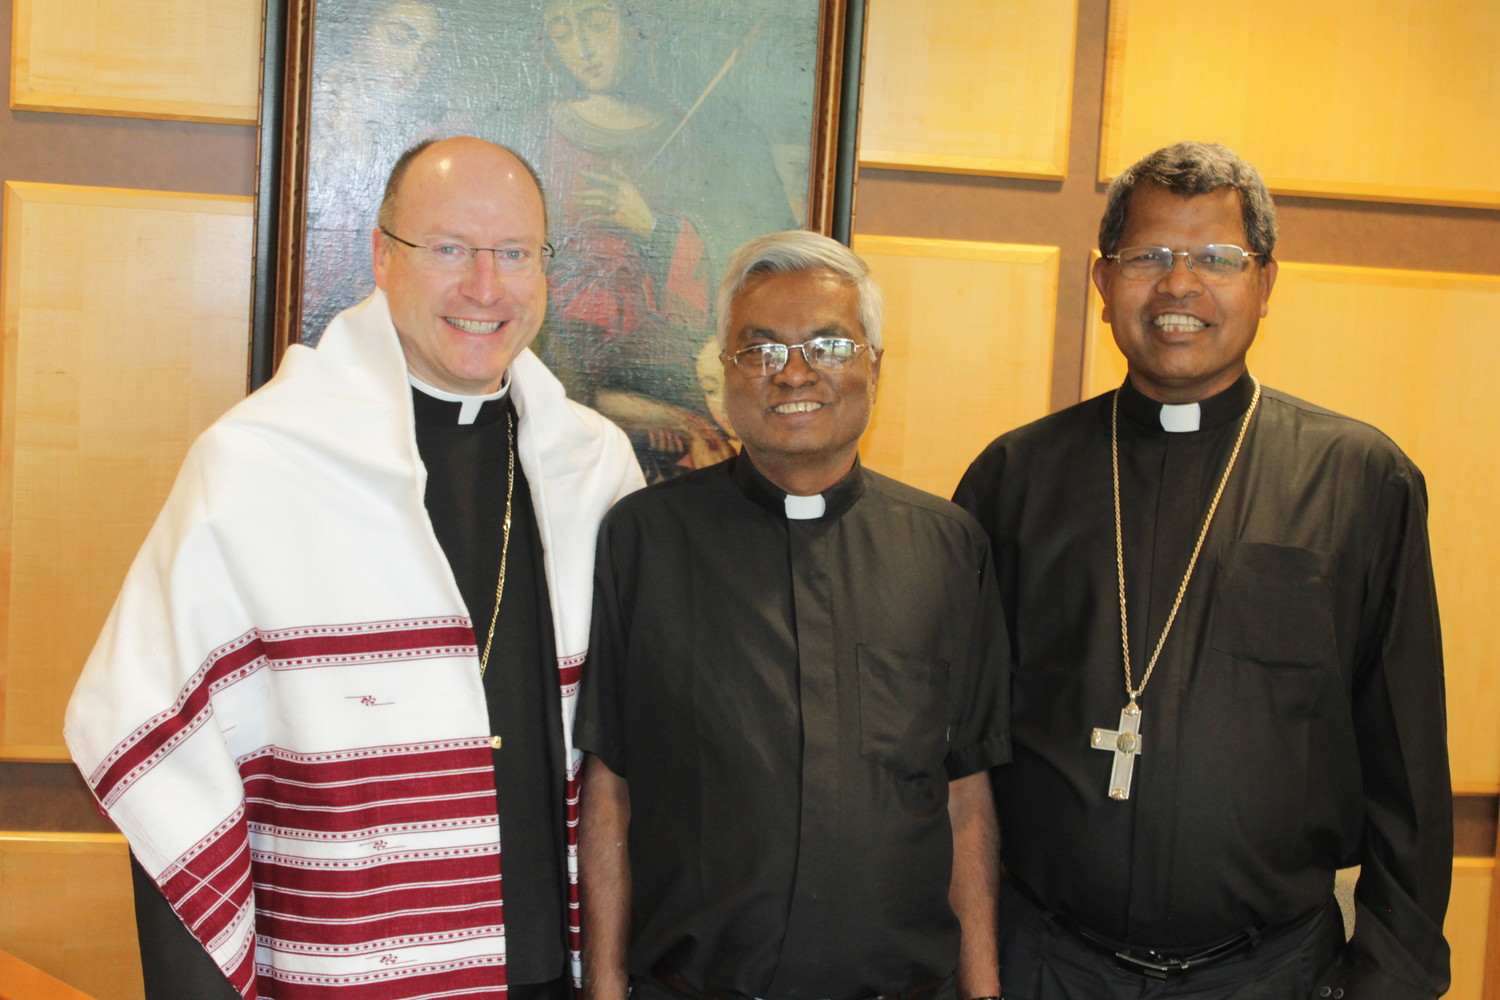 Bishop W. Shawn McKnight of Jefferson City greets Bishop Emmanuel Kerketta (right) of the Diocese of Jashpur, India during Bishop Kerketta's recent visit to the Jefferson City diocese. With them is Father Alex Ekka, a priest of the Jashpur diocese who is serving in Warsaw and Cole Camp. Bishop Kerketta presented Bishop McKnight a hand-woven turban, a symbol of royalty and great honor.